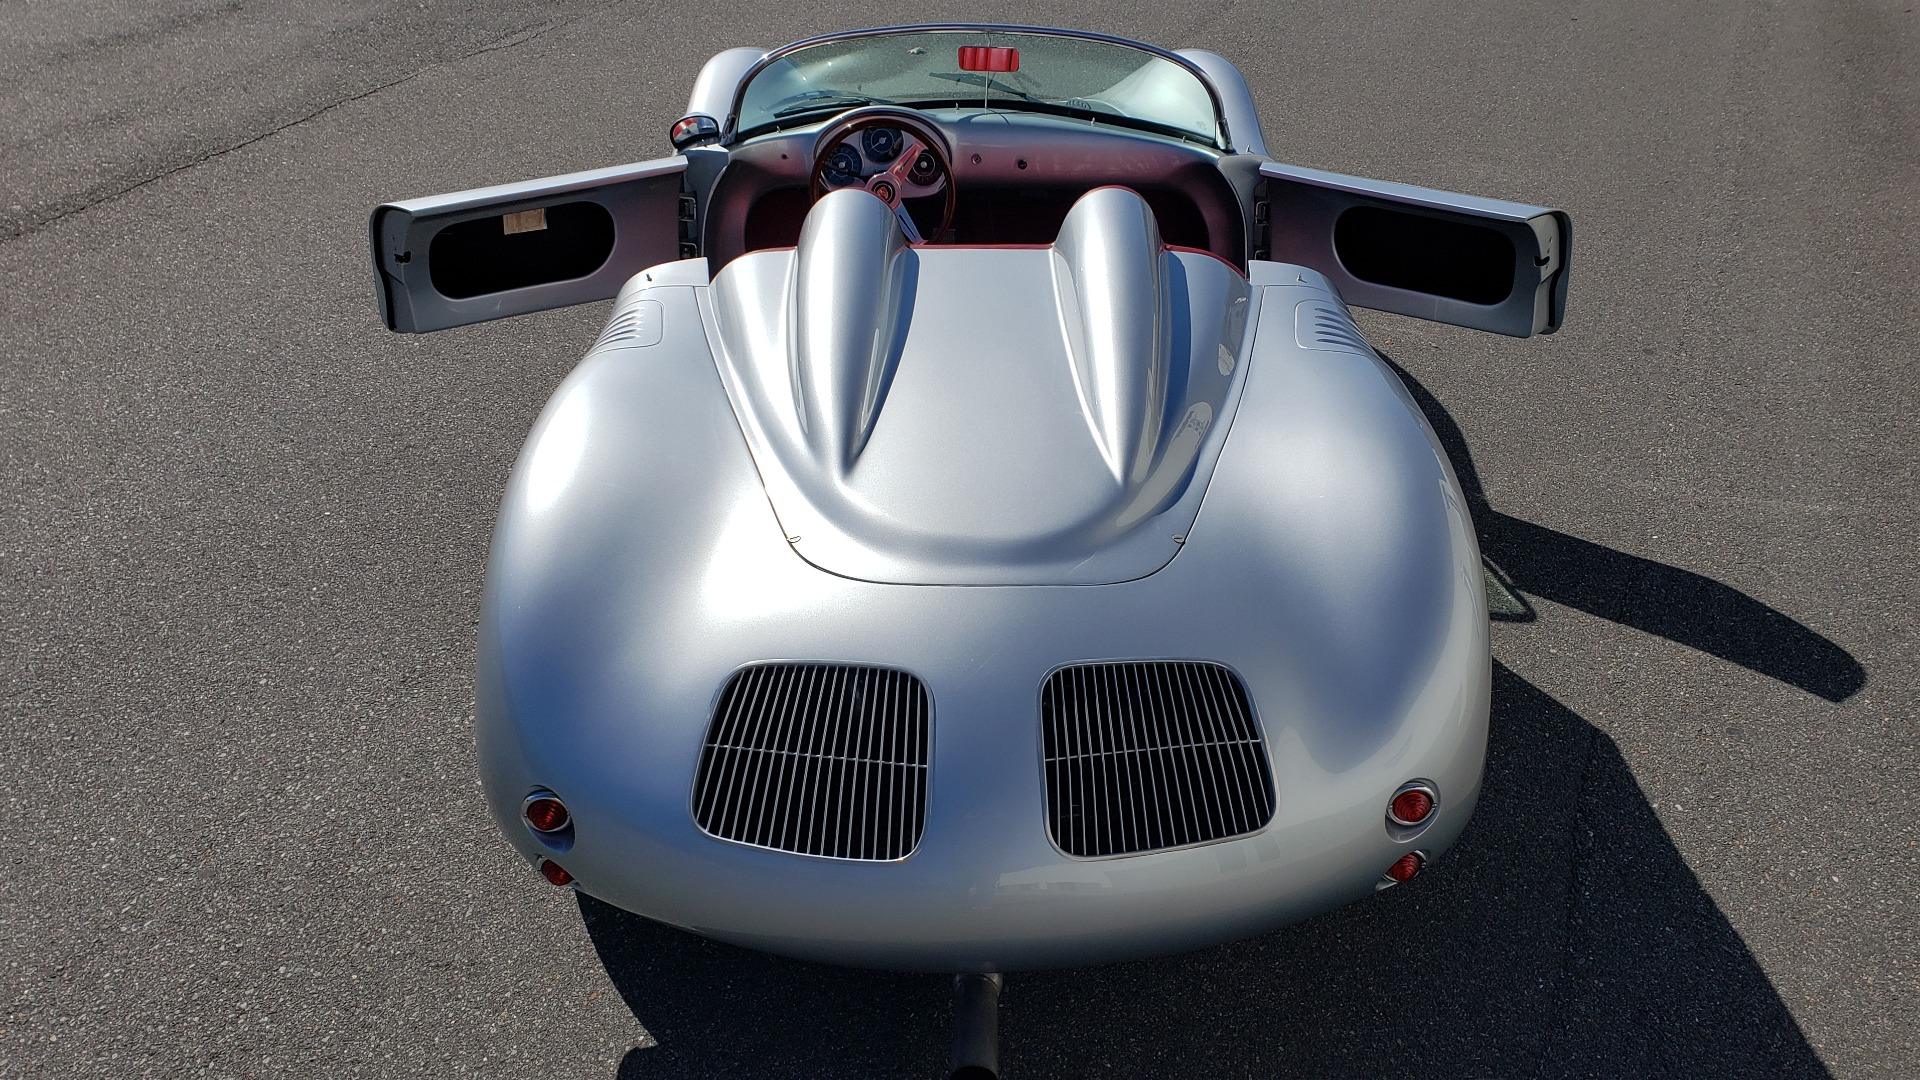 Used 1959 Porsche 718 RSK SPYDER REPLICA / 2275CC W/44MM WEBER (160HP) / 4-SPD MANUAL for sale $39,999 at Formula Imports in Charlotte NC 28227 37